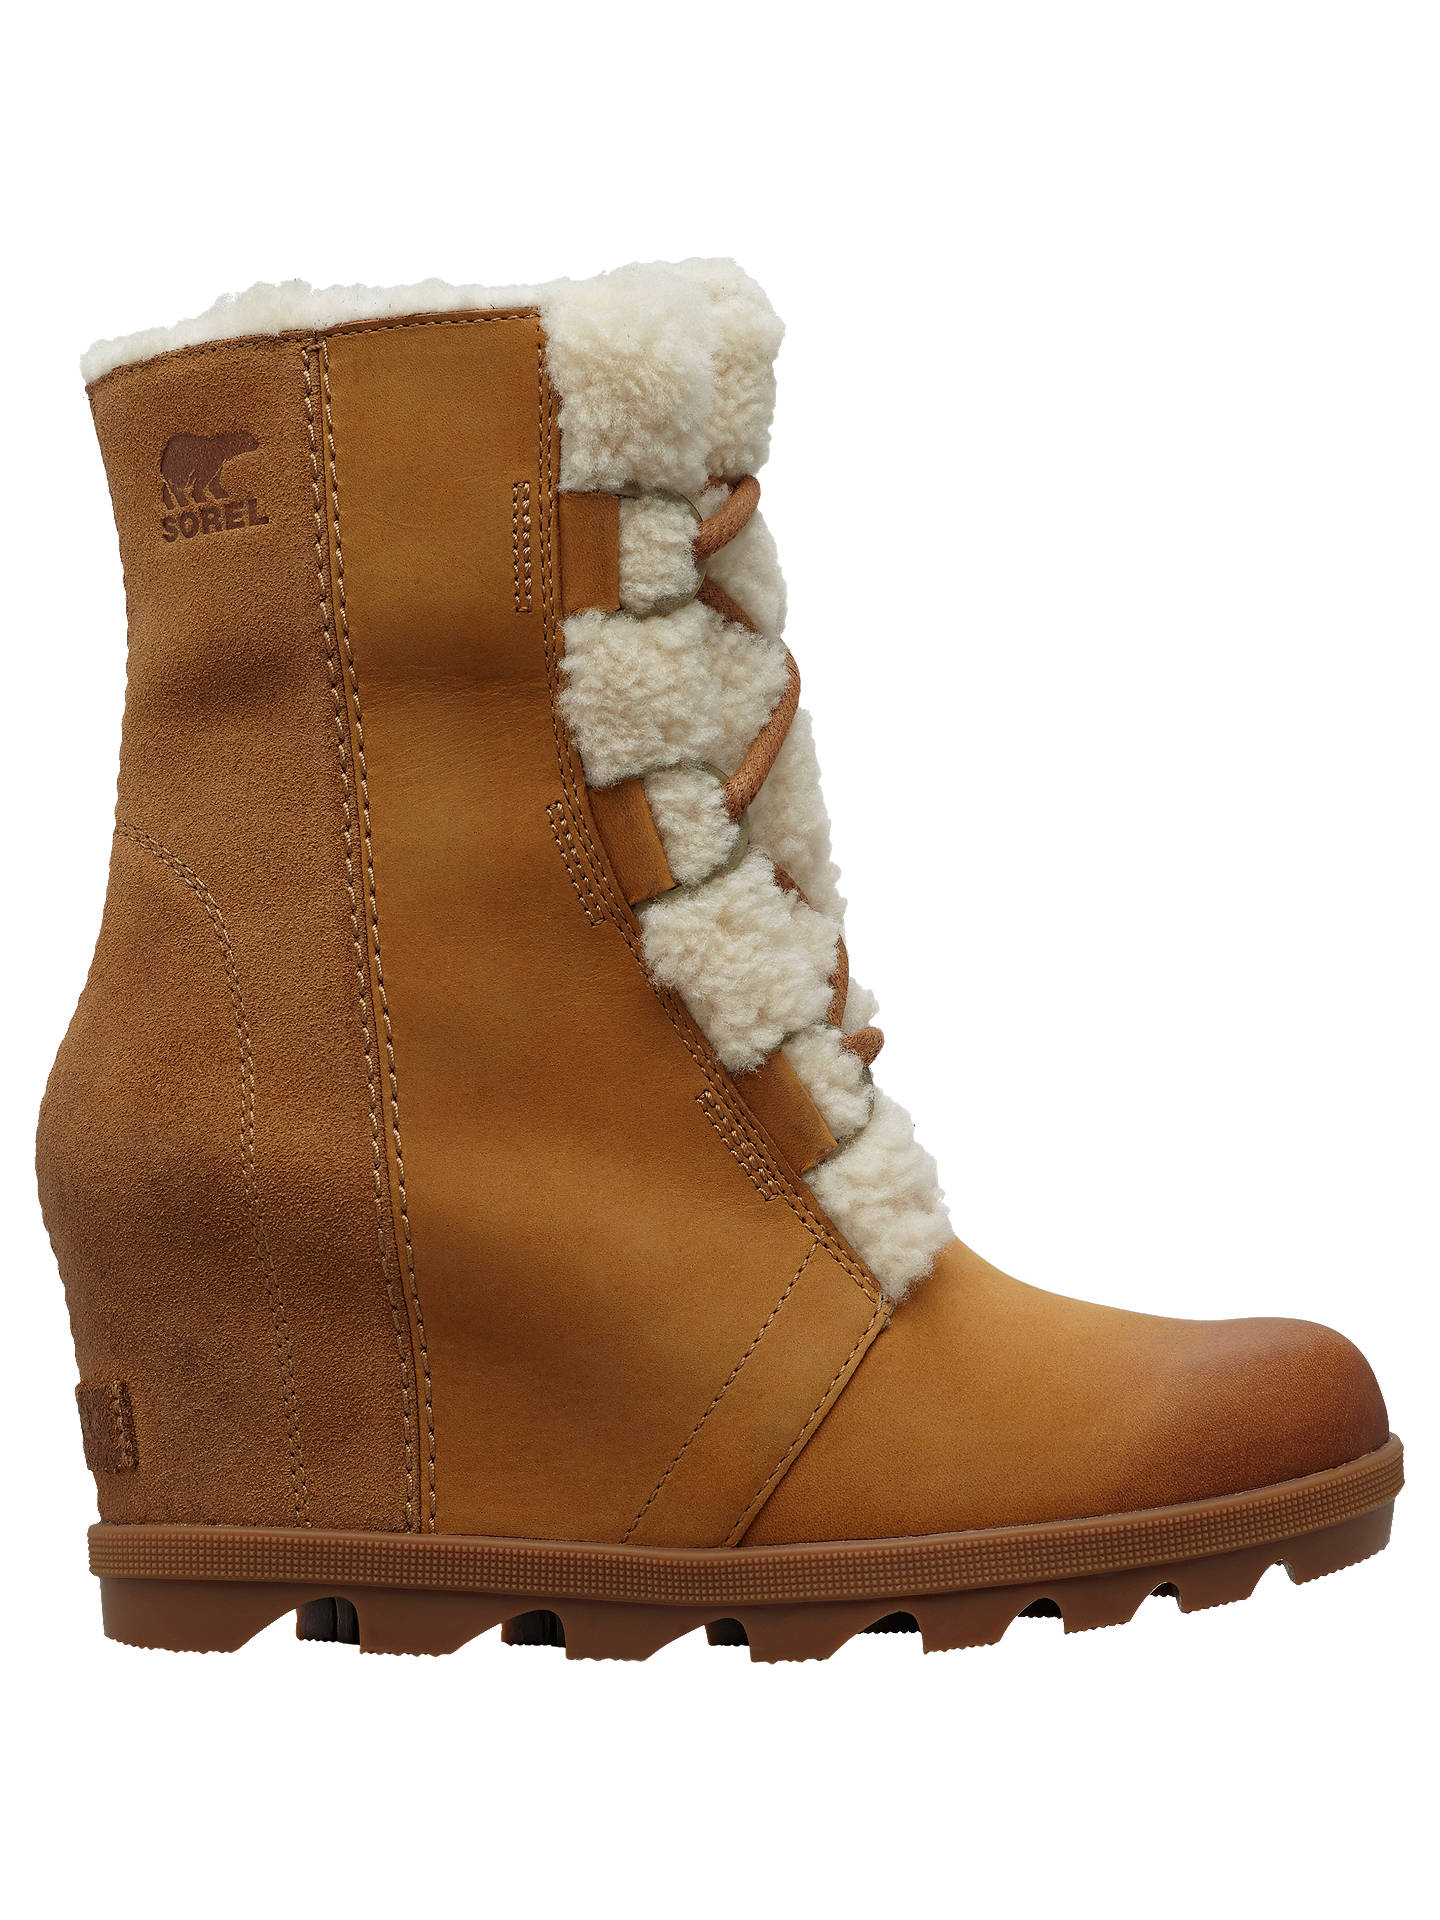 b9da6c9d653d Buy Sorel Joan Of Arctic Wedge Heel Ankle Snow Boots